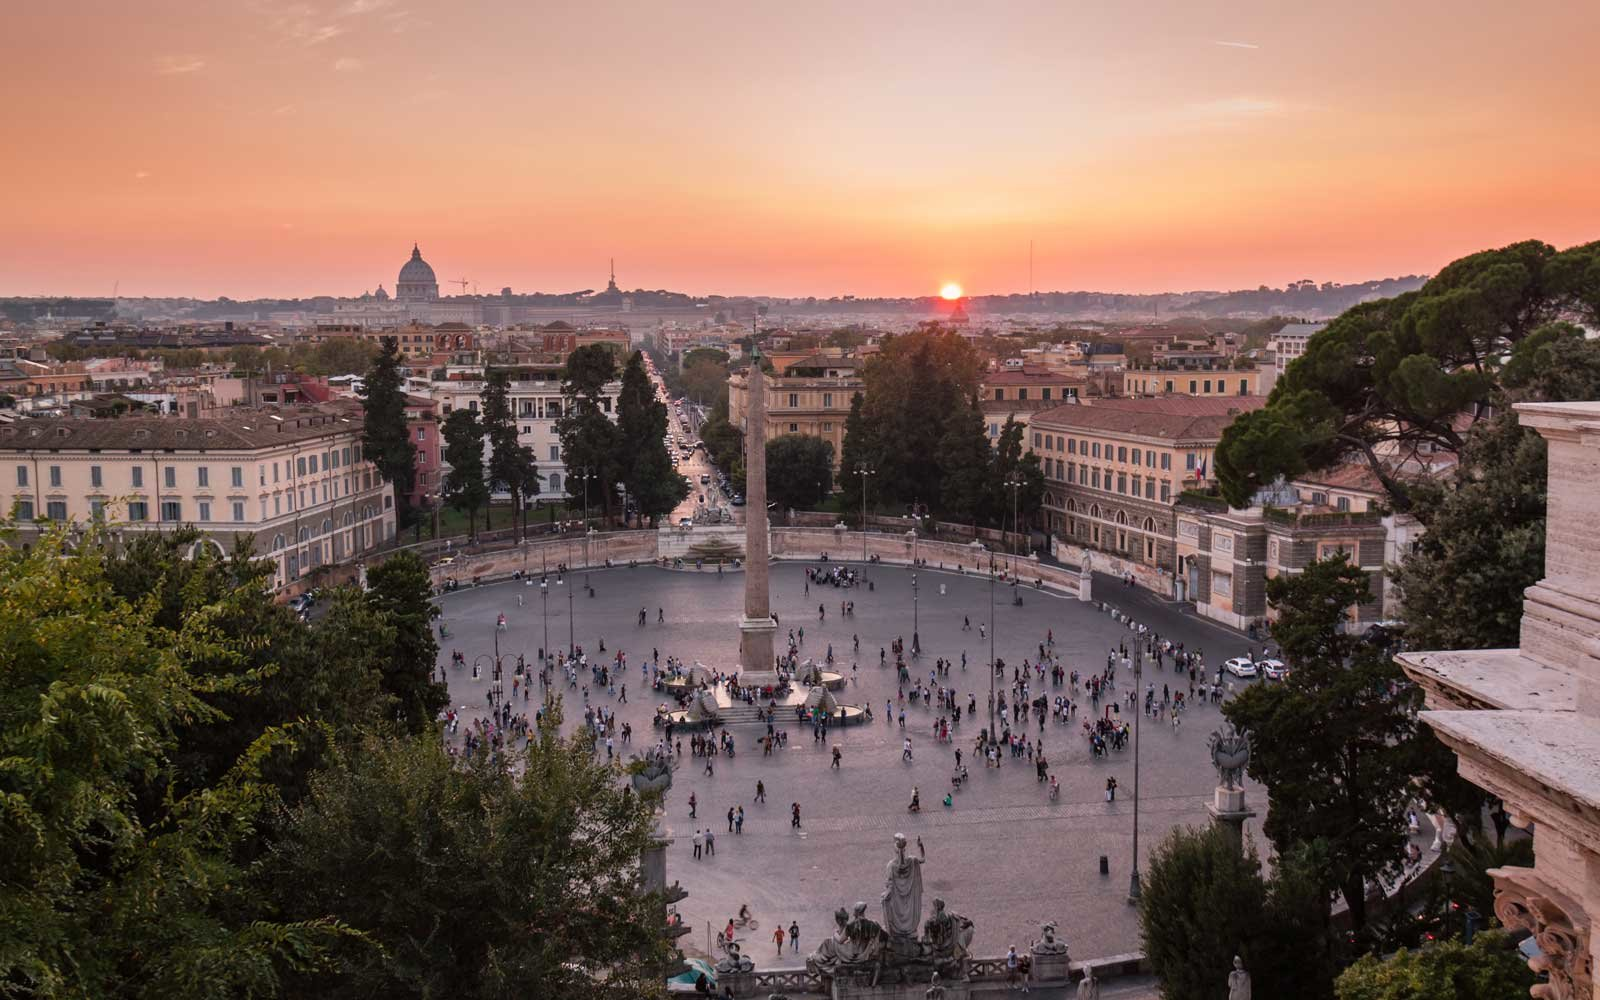 View of sunset in Rome